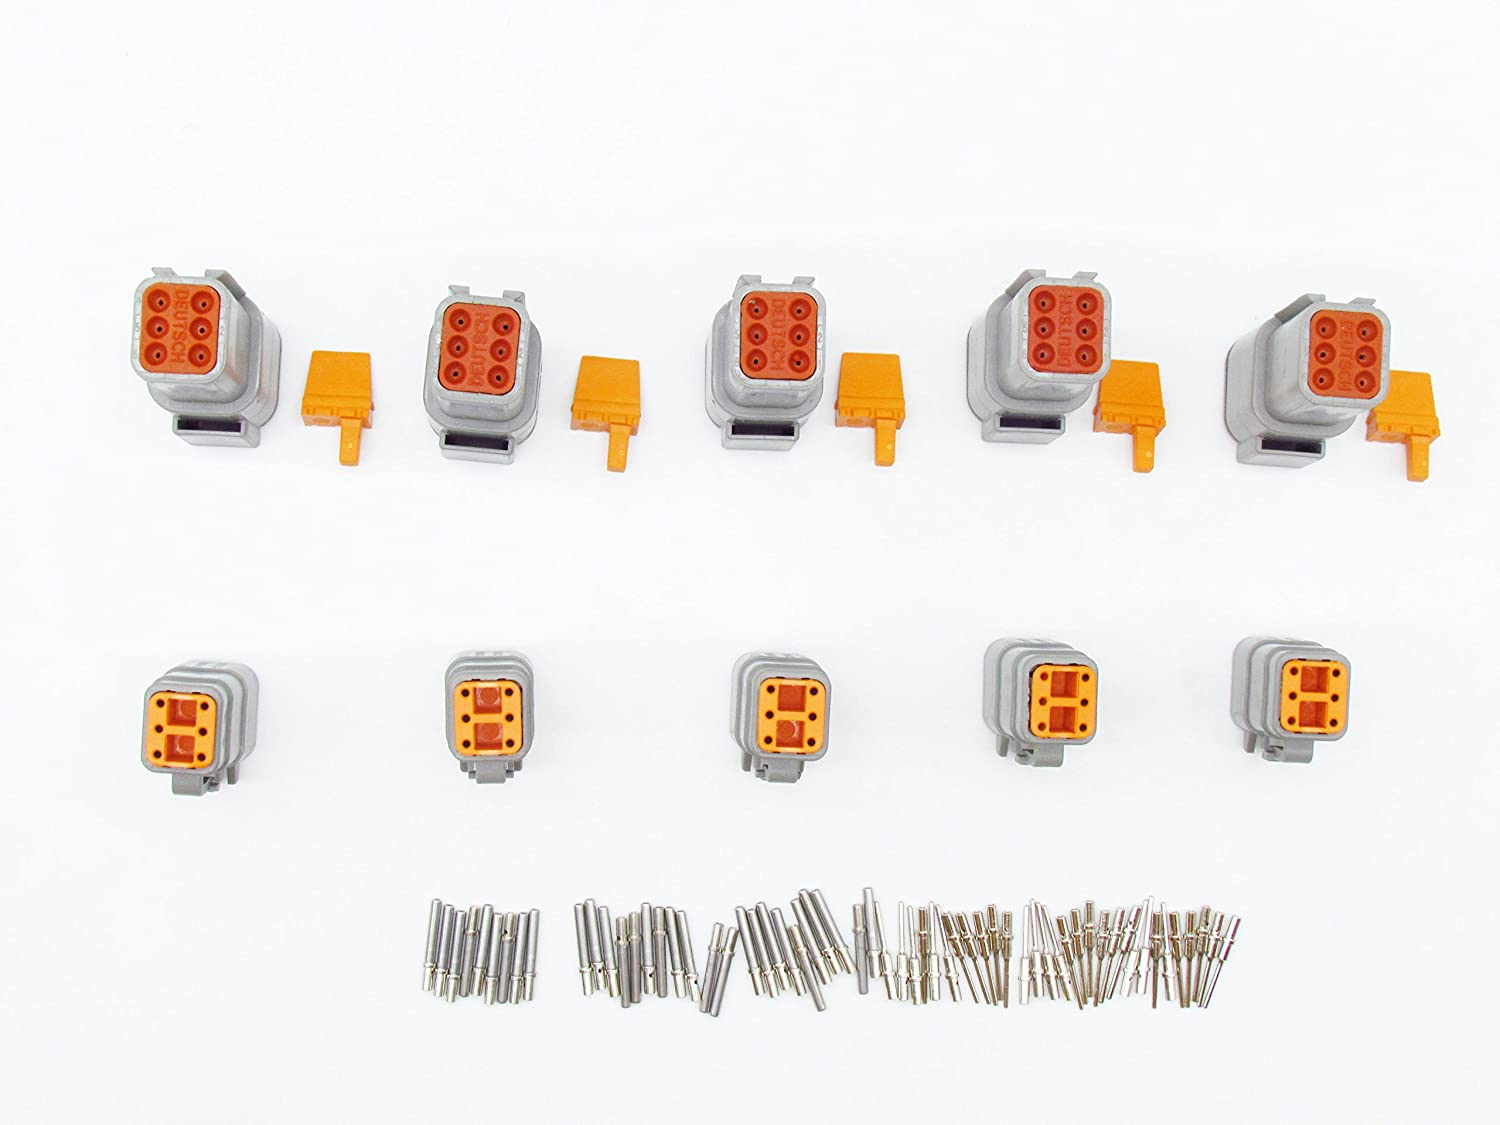 CNKF 5 Sets DTM Gray Plug 6 position way male female auto connector DTM06-6S DTM04-6P with terminals pins